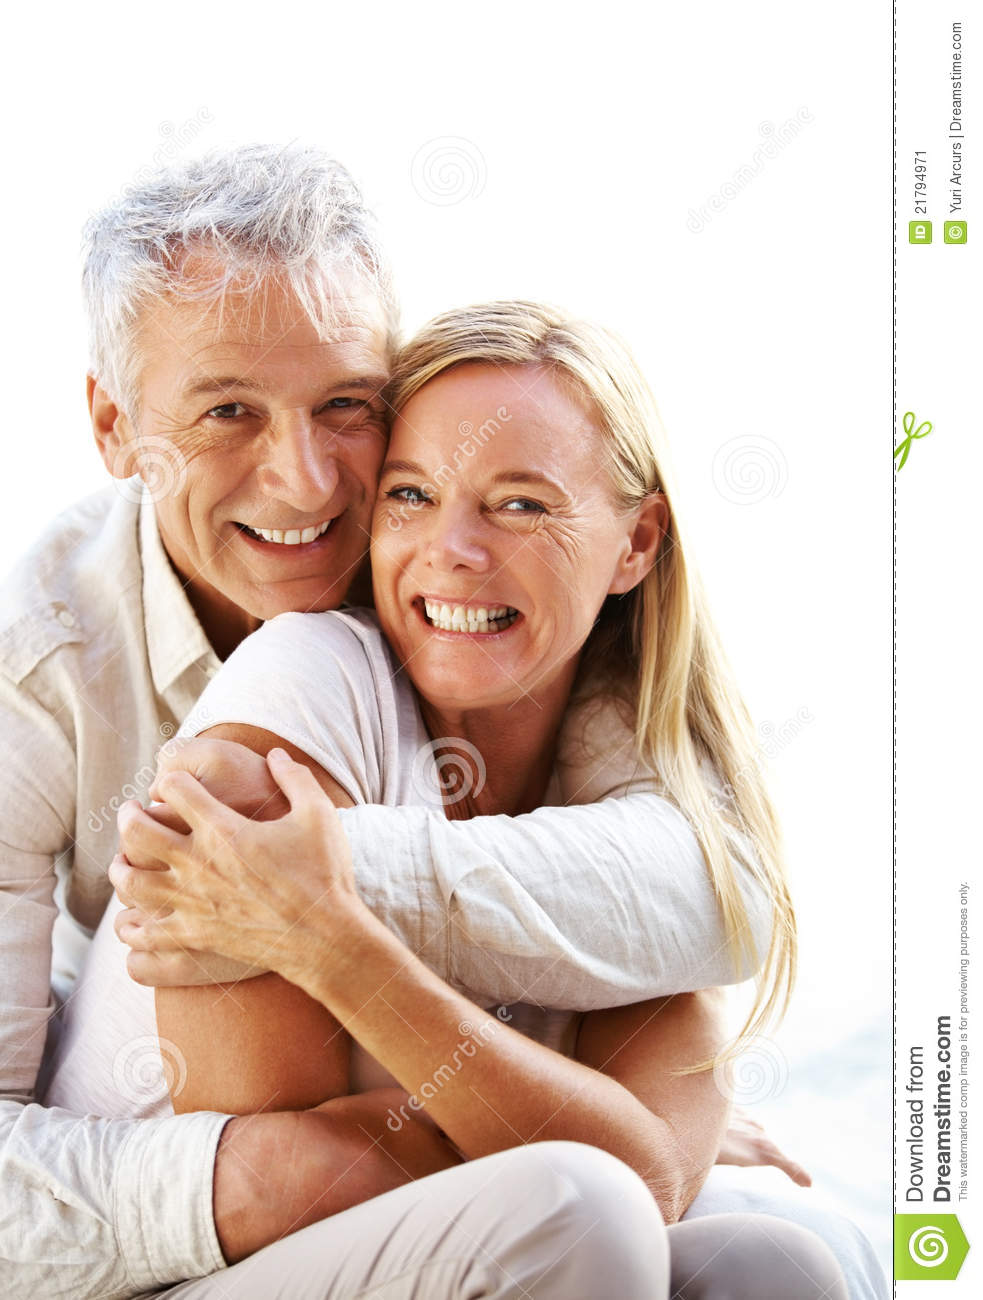 stock image couple hugging each other image 21794971